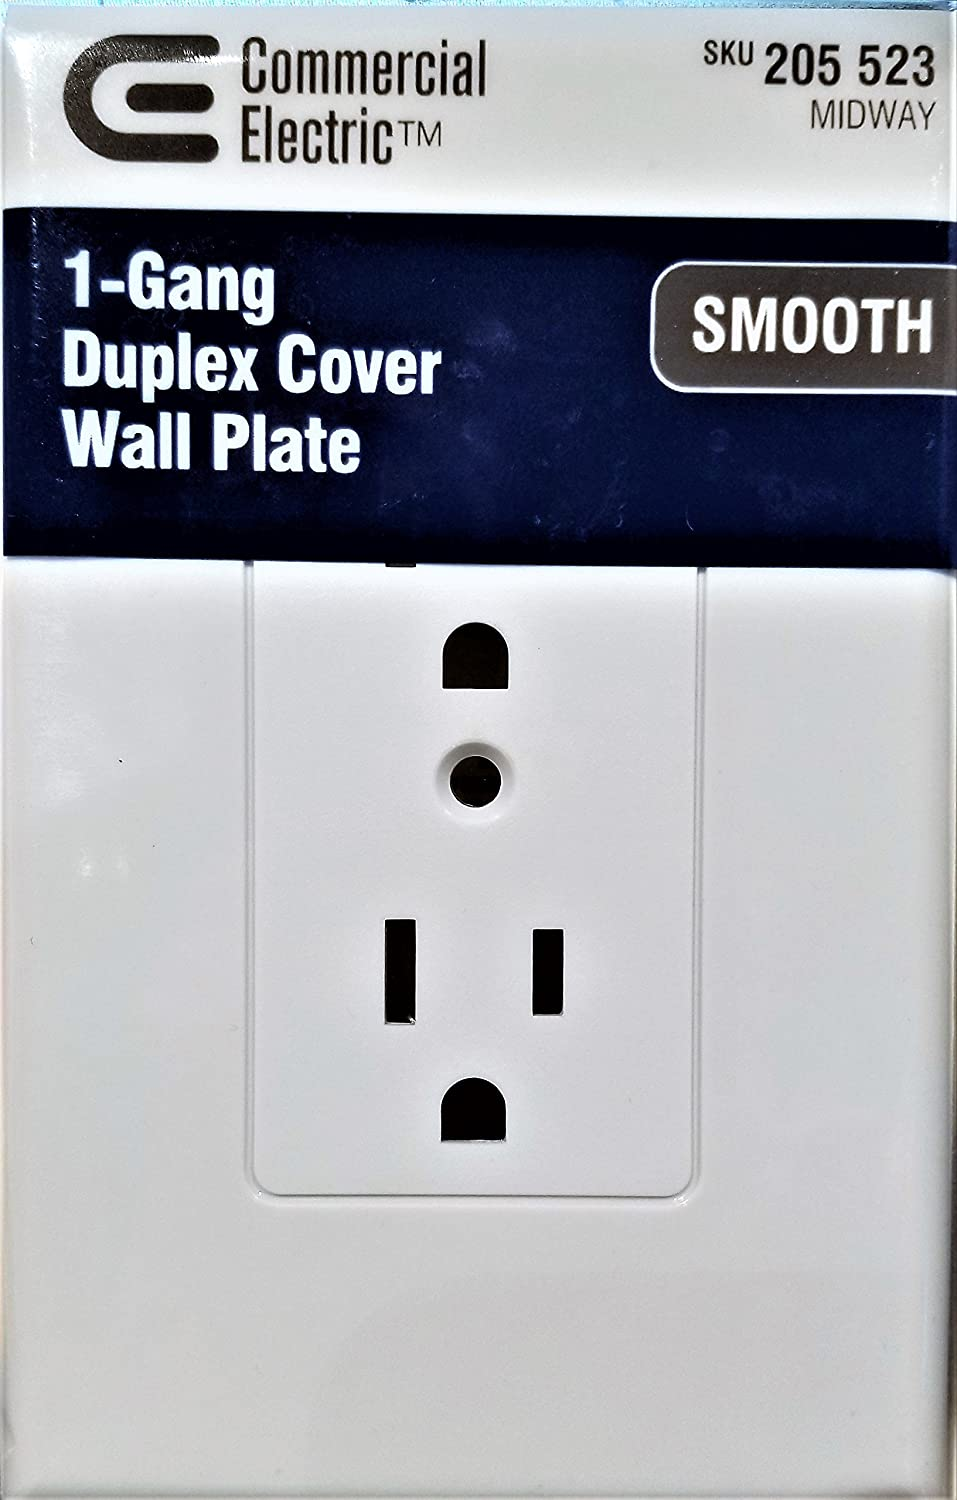 1 Gang Duplex Cover Wall Plate 205523 Smooth